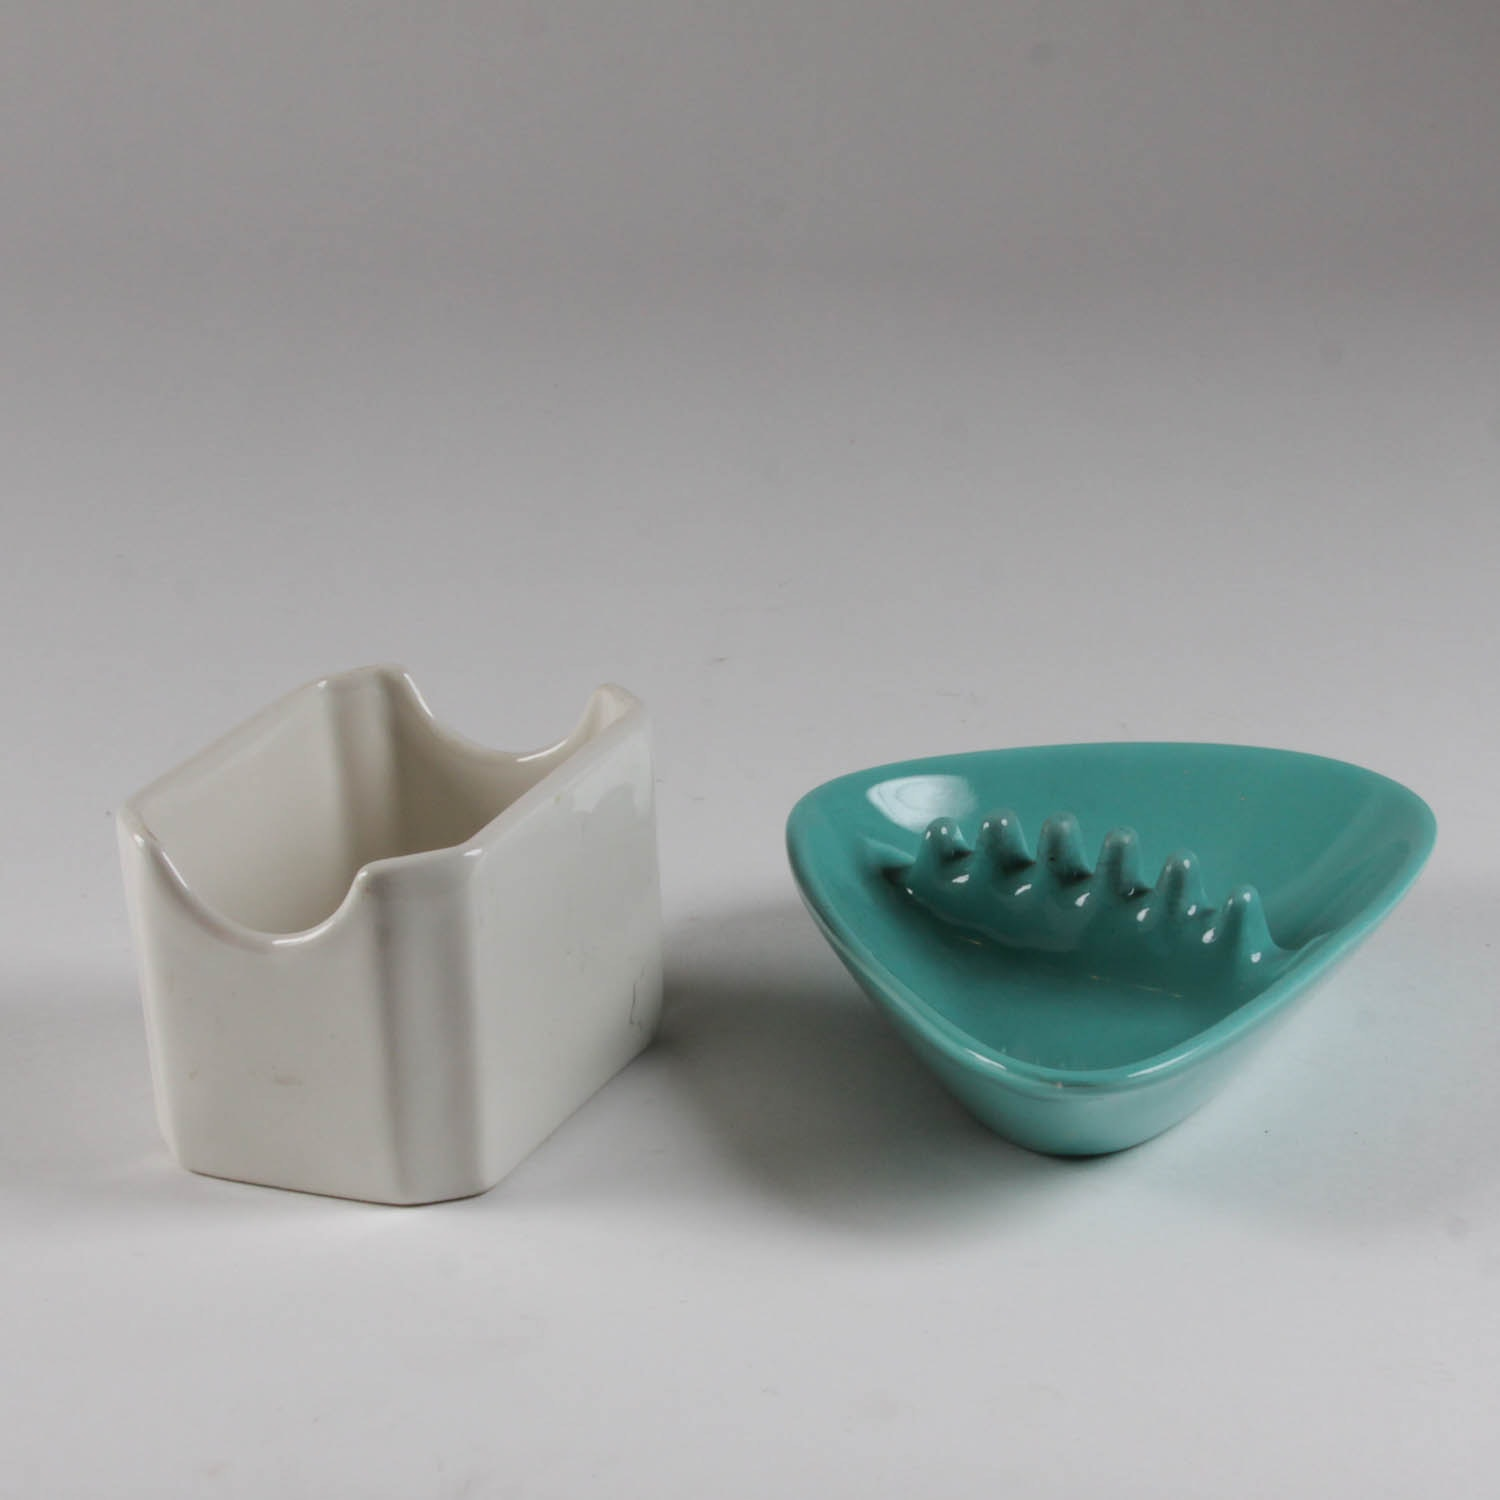 Pair of Mid-Century Coors Ashtrays